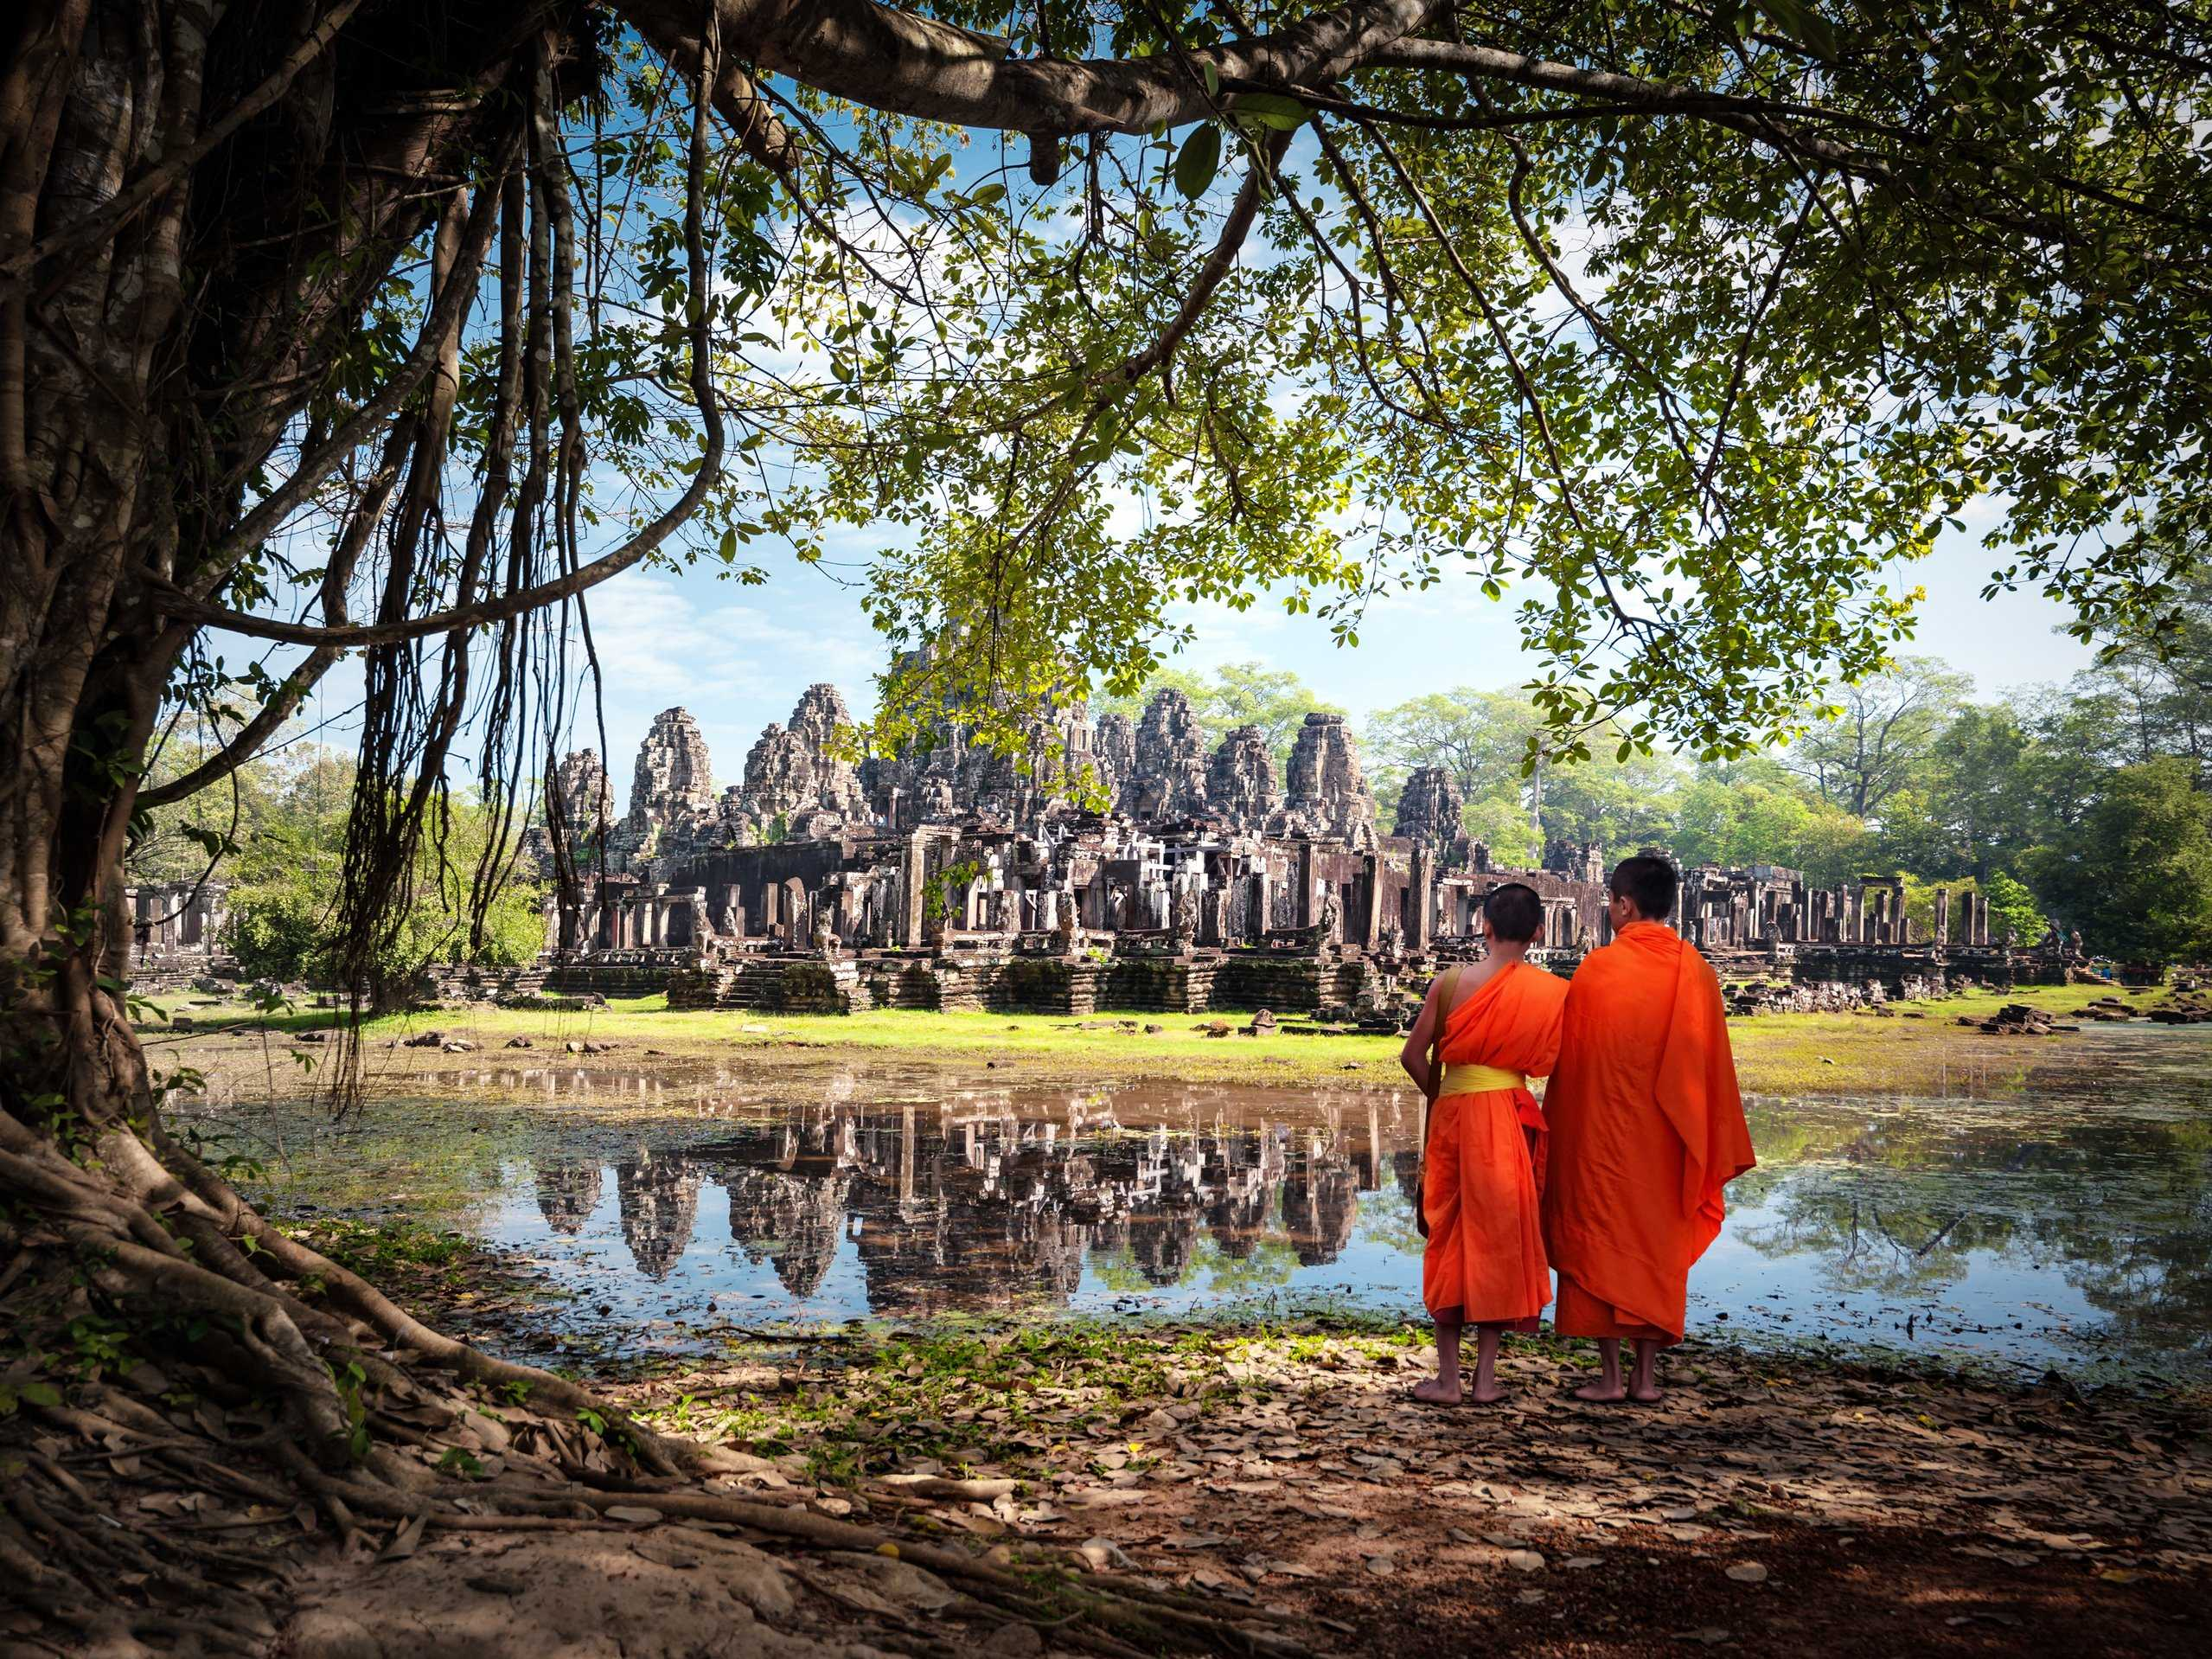 Backpack through Southeast Asia. Some popular stops include Chiang Mai in Thailand, Angkor Wat in Cambodia (pictured below), Laos, Hanoi in Vietnam, and Bali and Ubud in Indonesia.